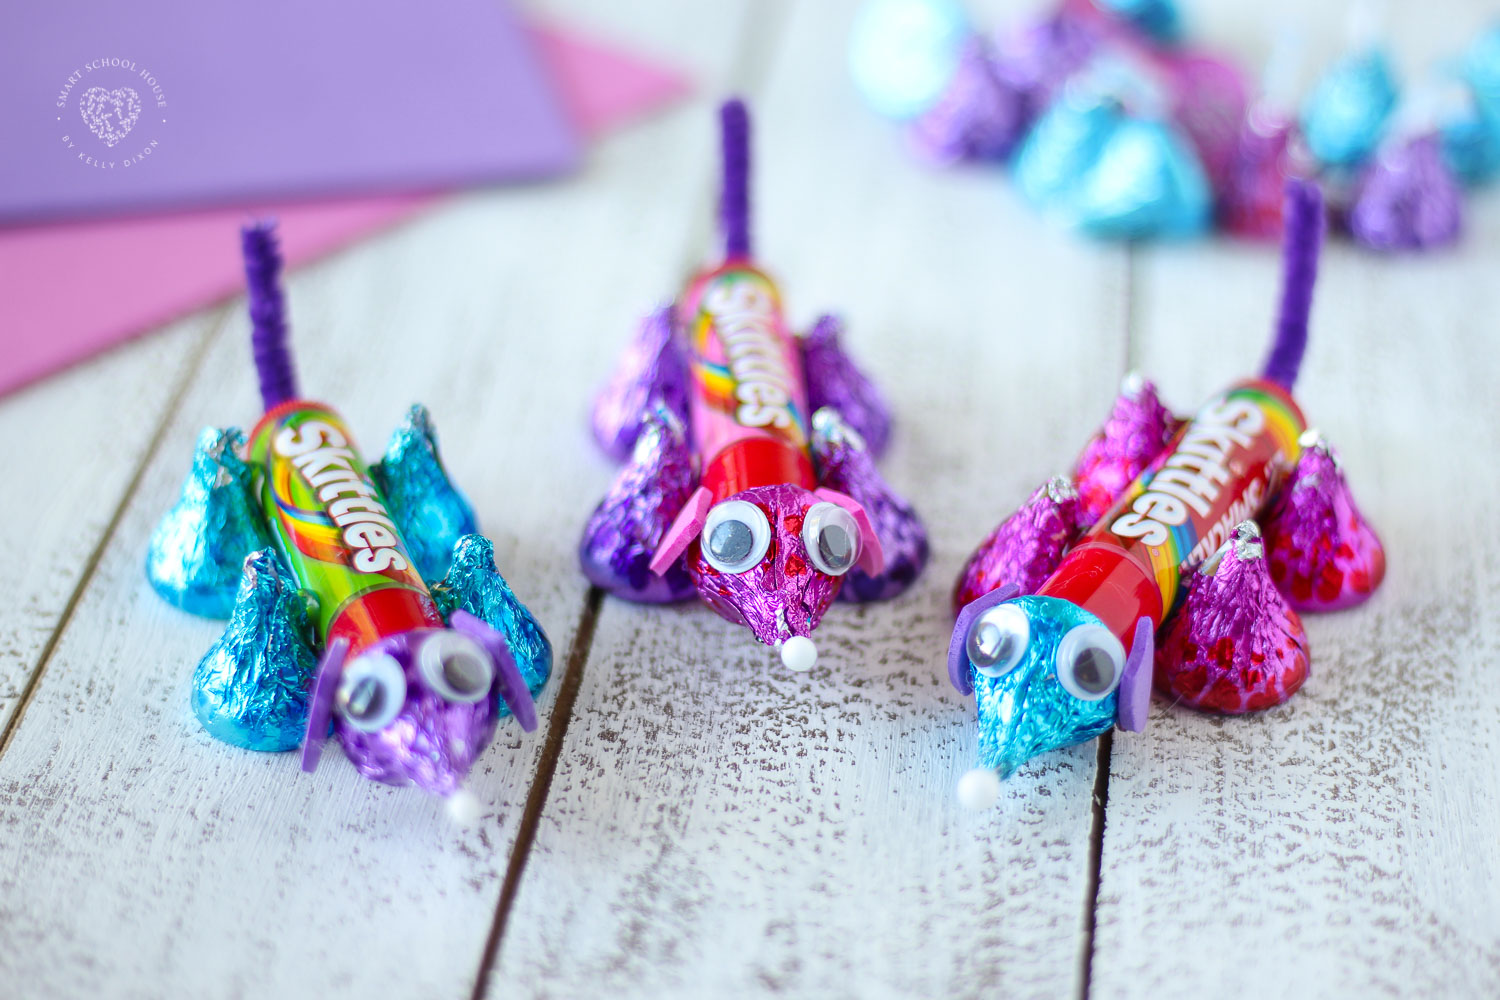 Made from Hershey's Kisses. Easy, Fun and so cute! Valentine Candy Critter for a Fun Kid's Craft and Treat. Lip Balm Critters!